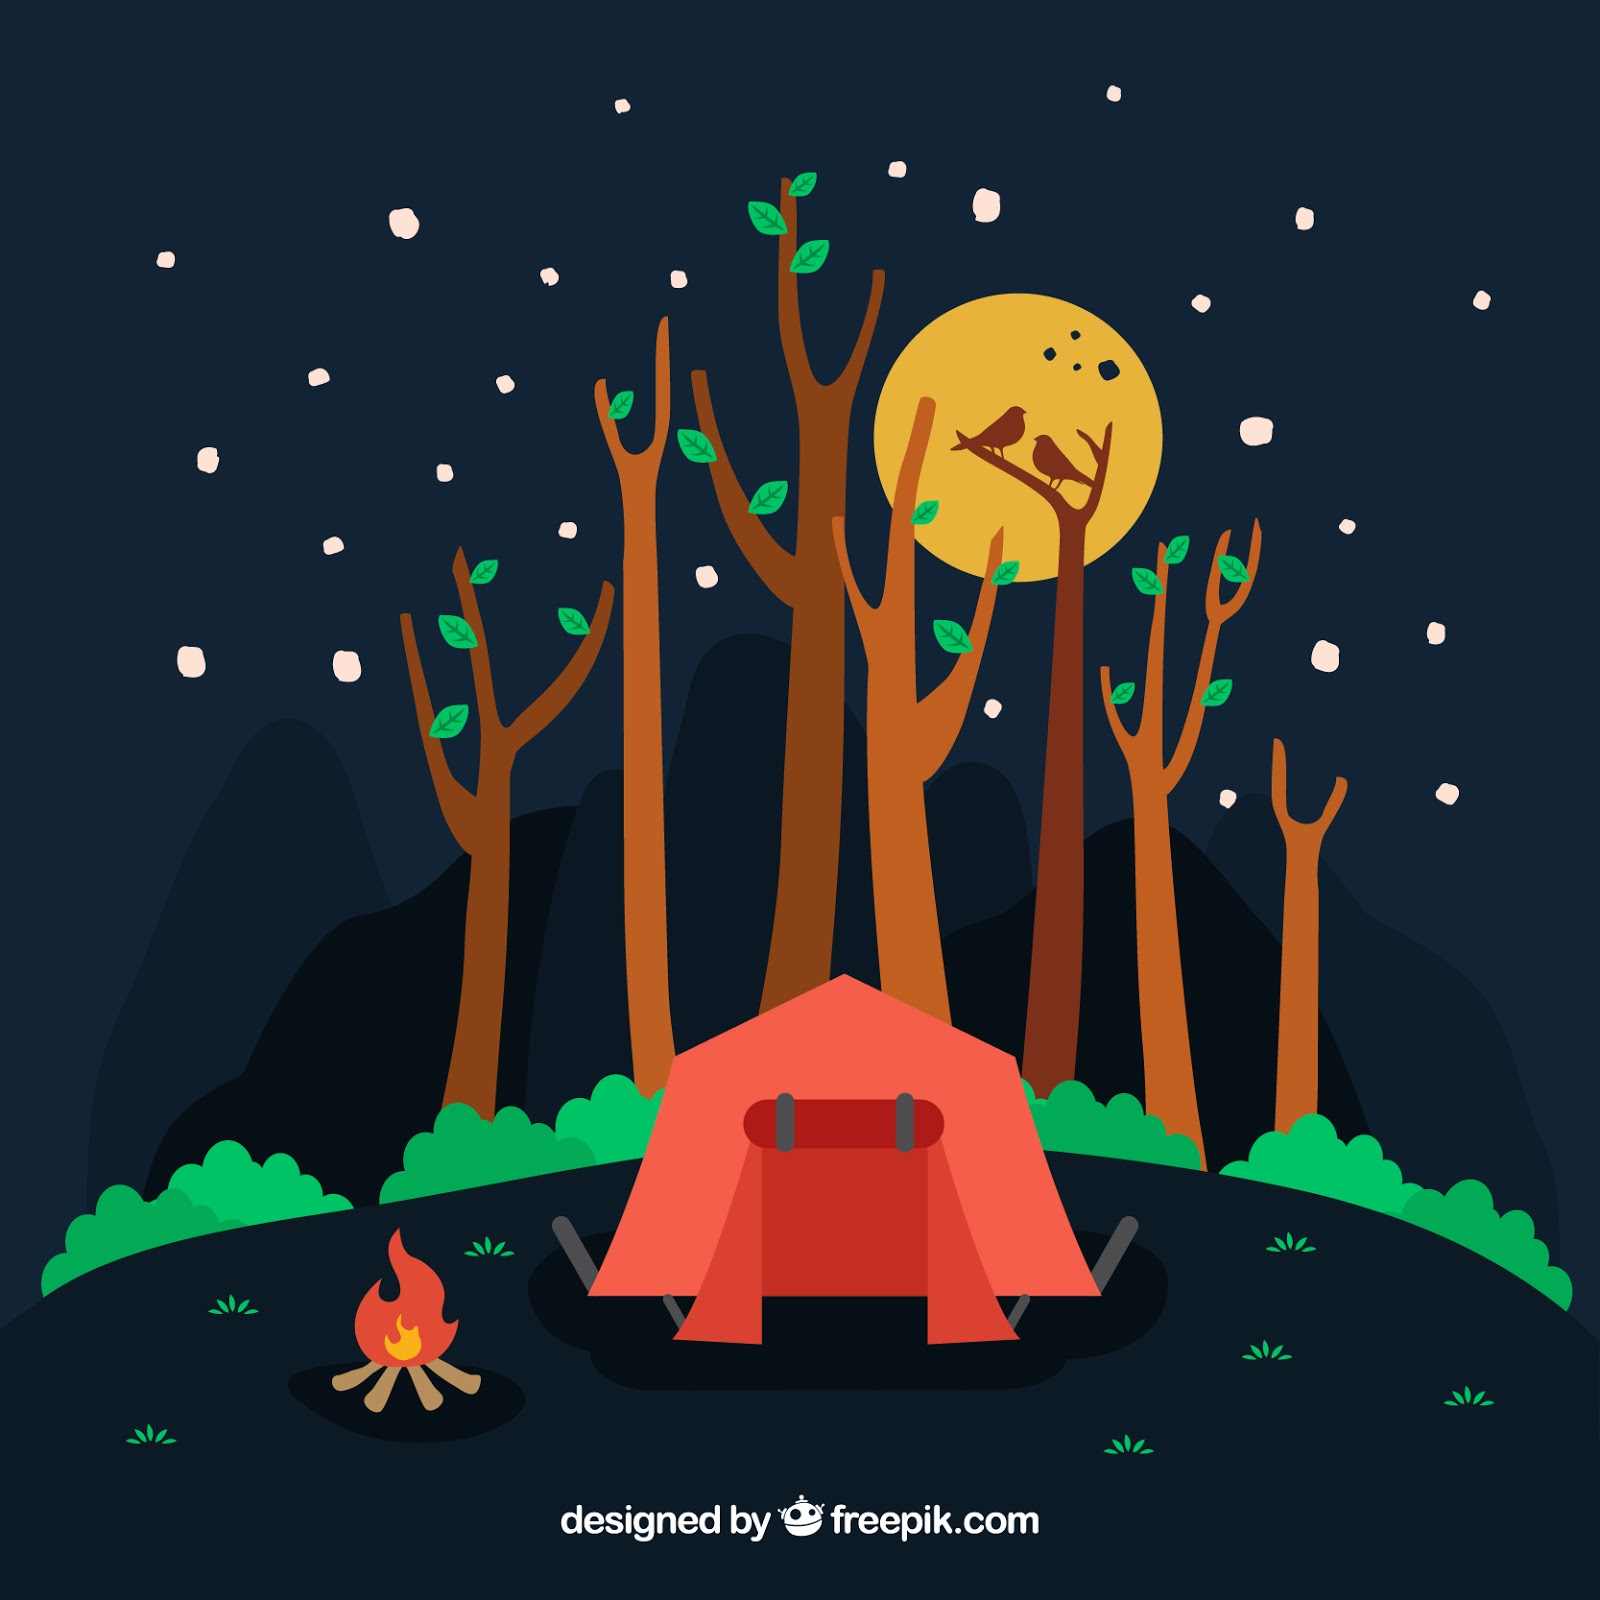 Work related freepik 02 azreenchan night camping in the forest stopboris Gallery